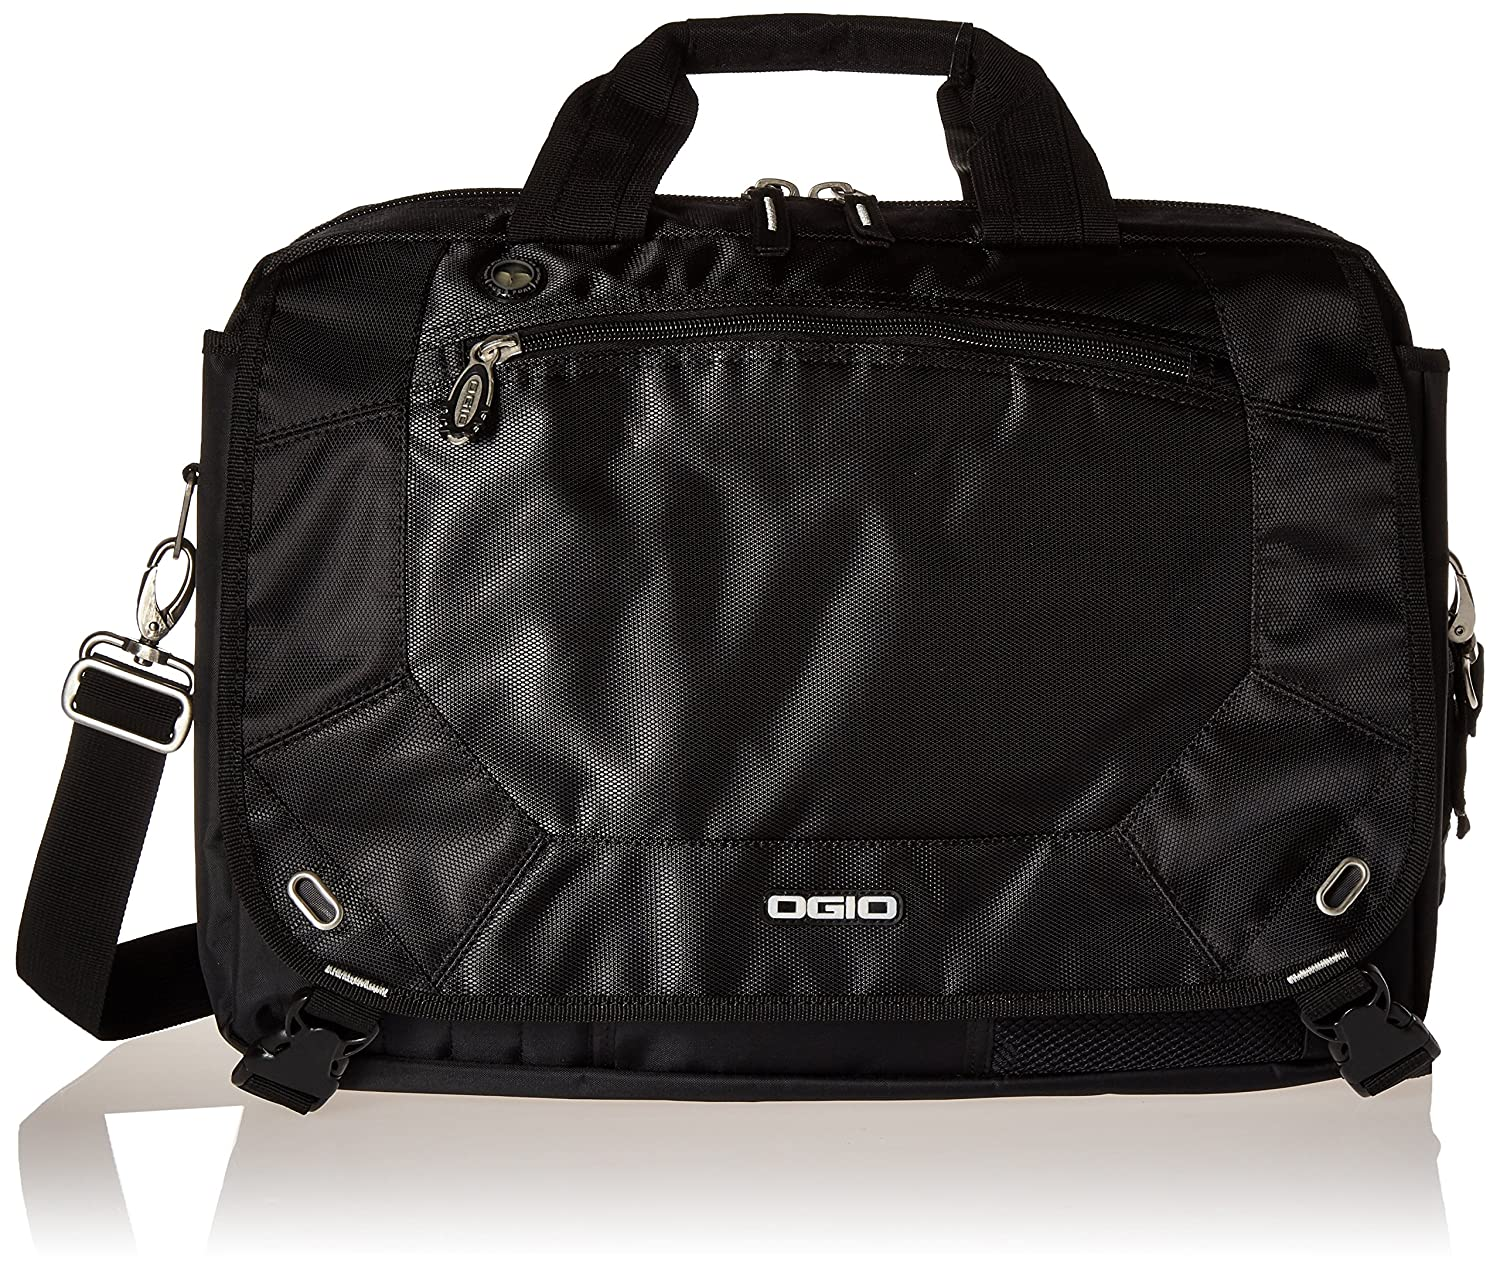 Ogio Unisex Radial Top Zip Laptop Messenger Bag